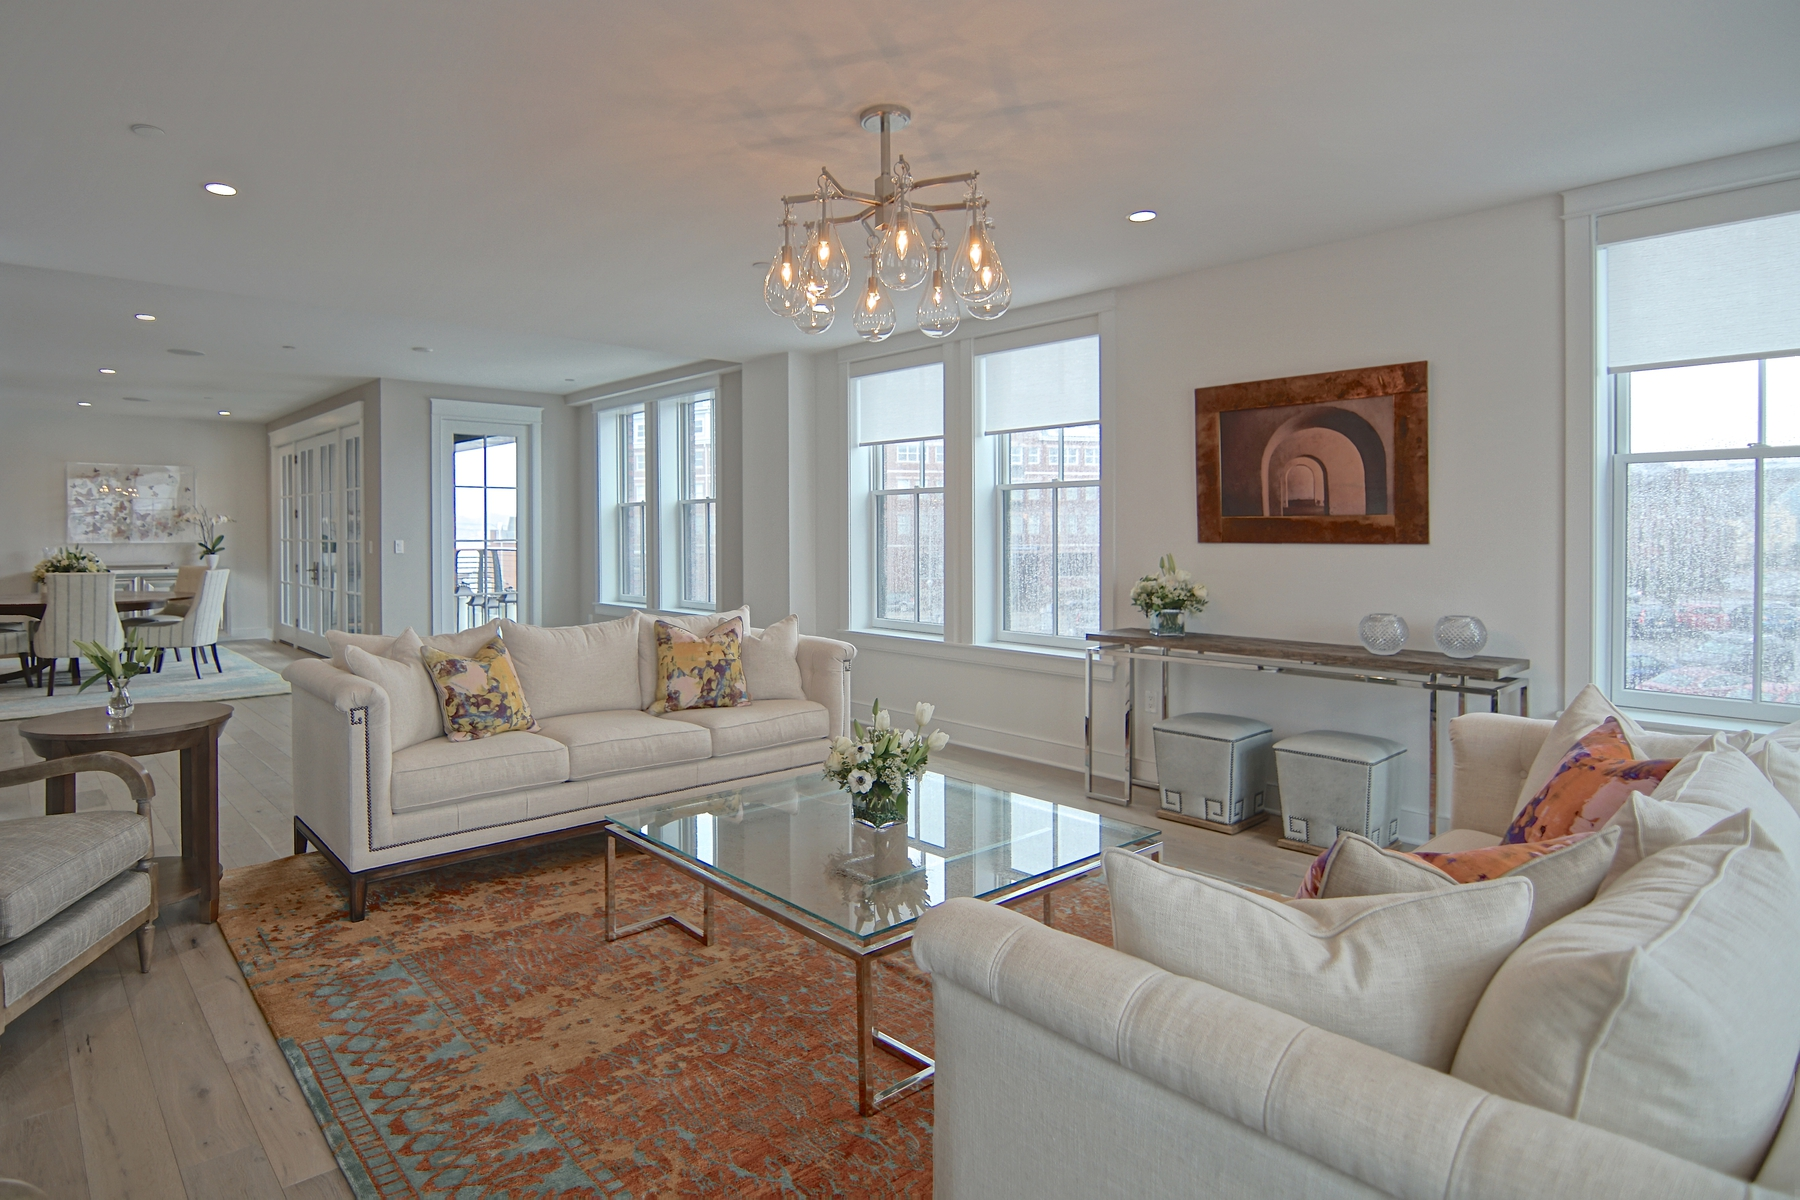 Additional photo for property listing at The Jackson 233 Vaughan Street Unit 303 Portsmouth, New Hampshire 03801 United States